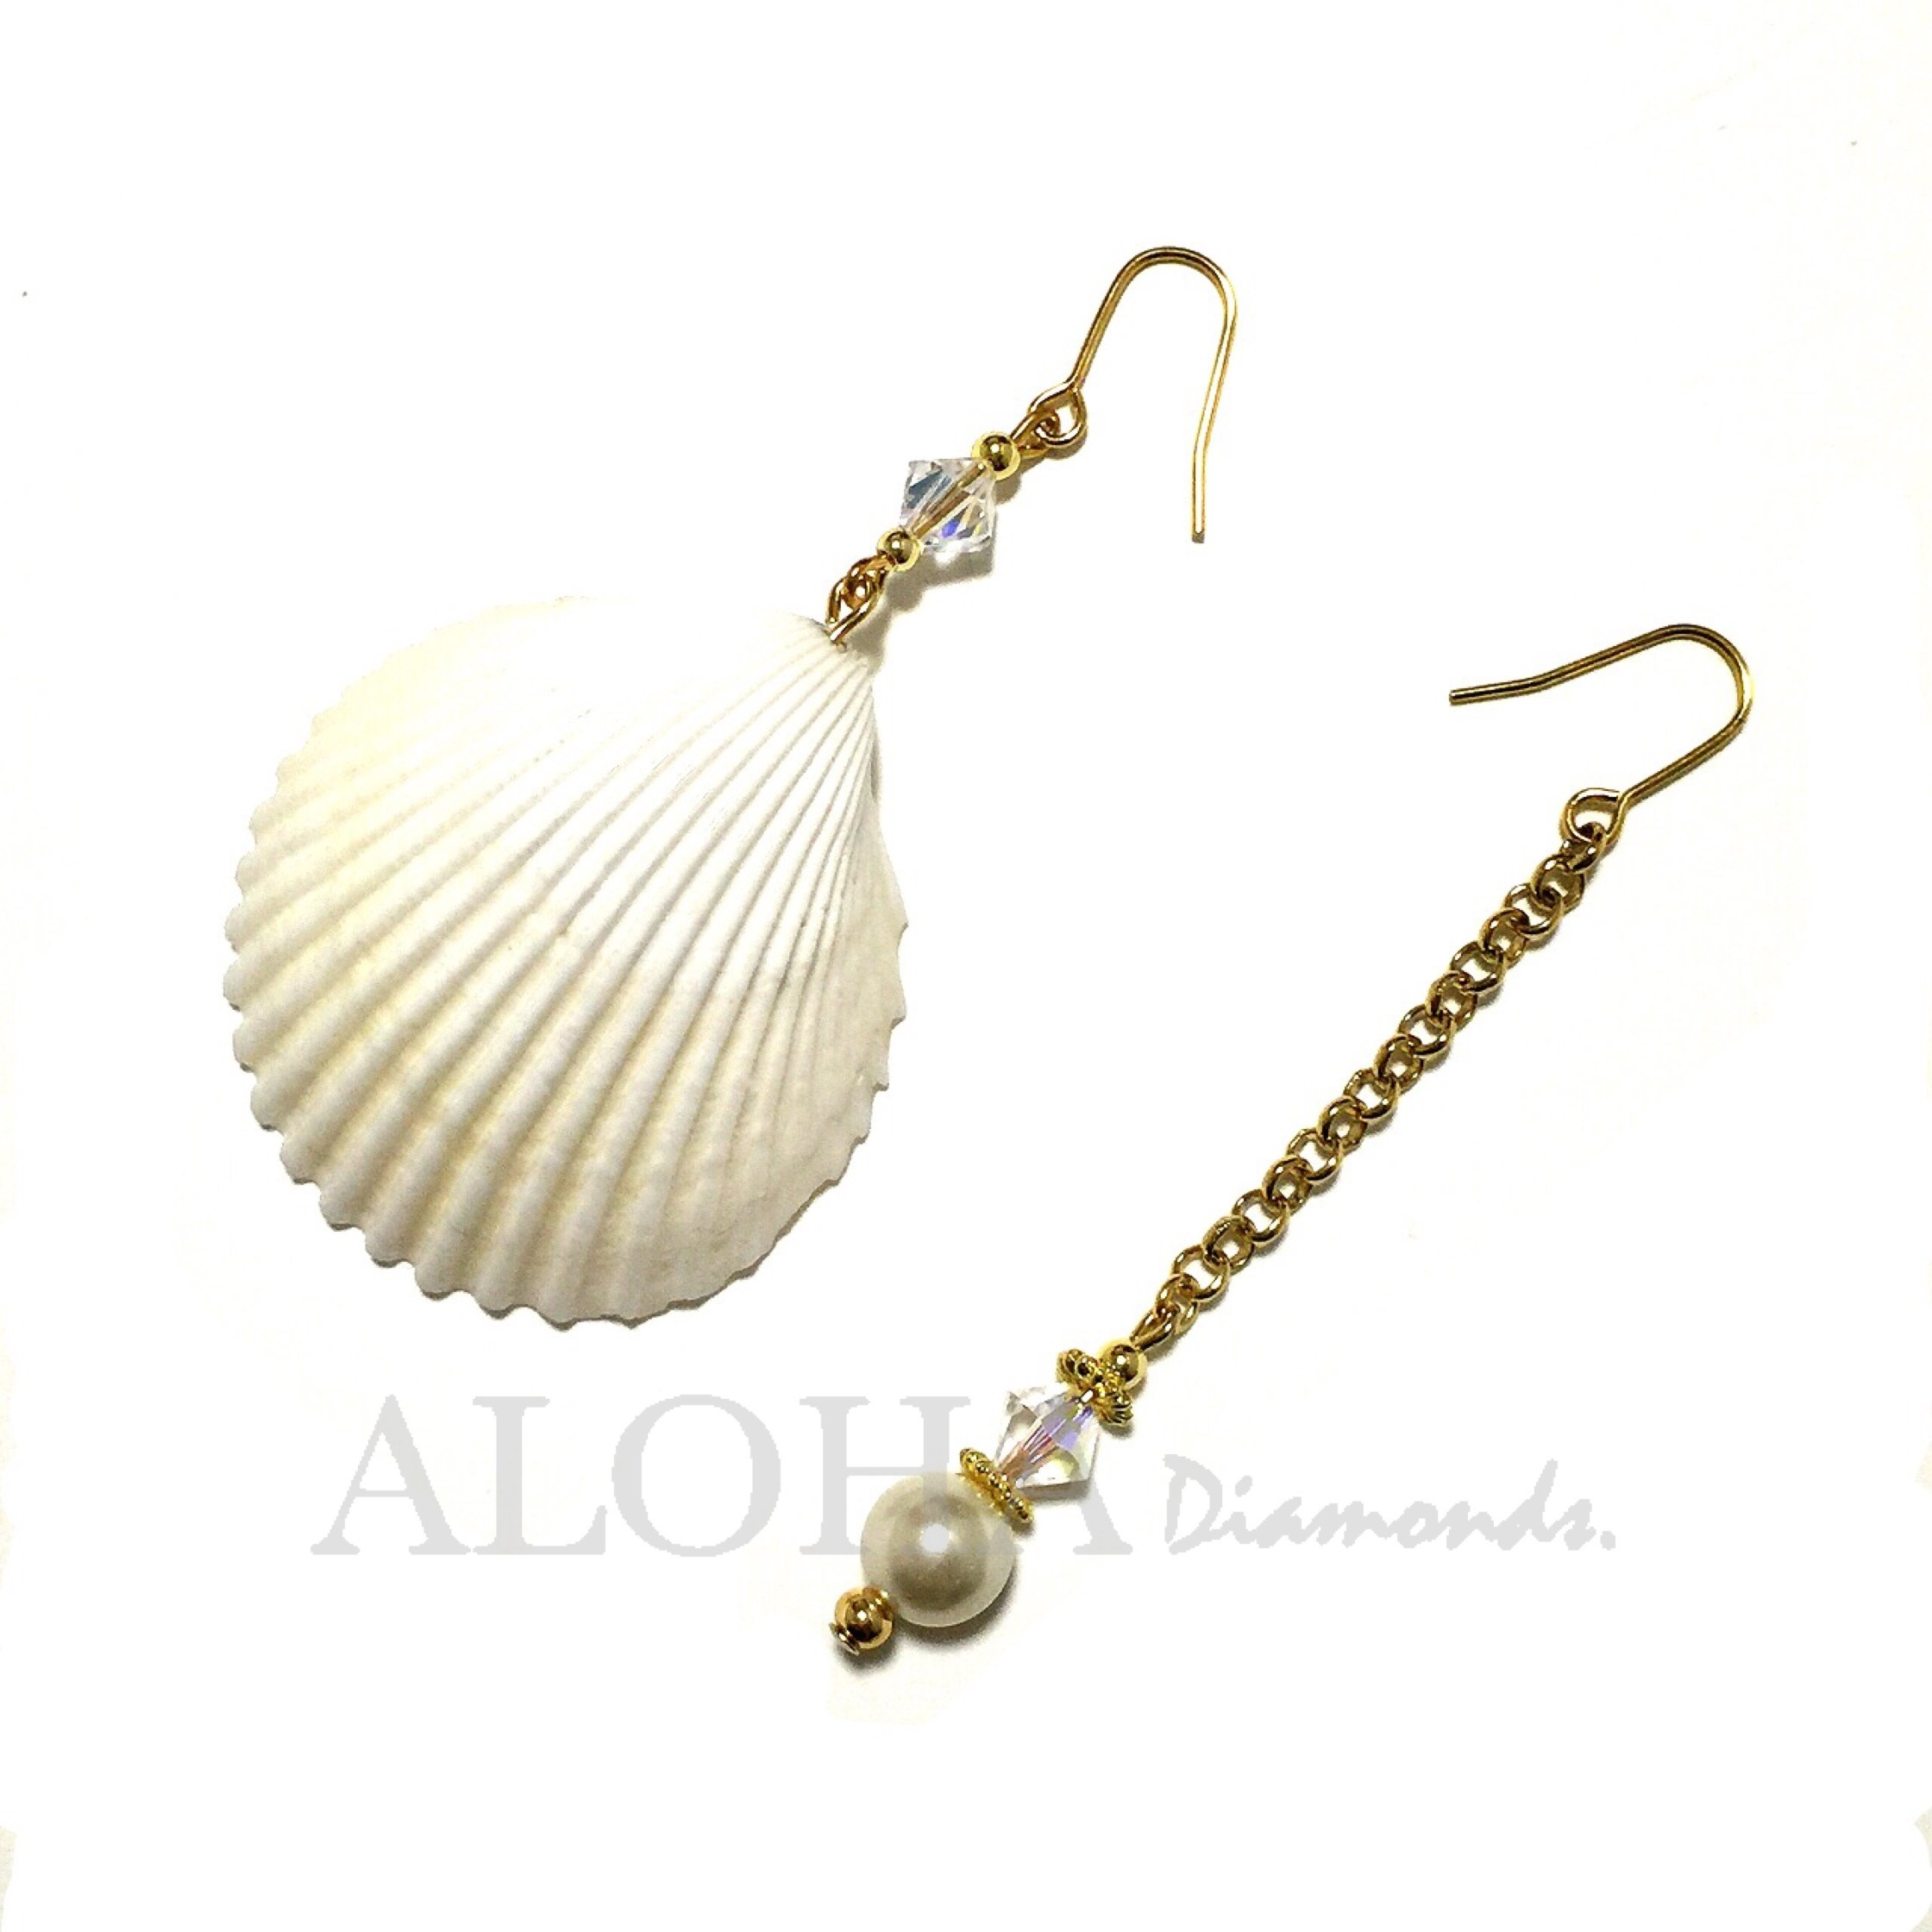 ▲▲▲White Mermaid ▲▲▲ ピアス